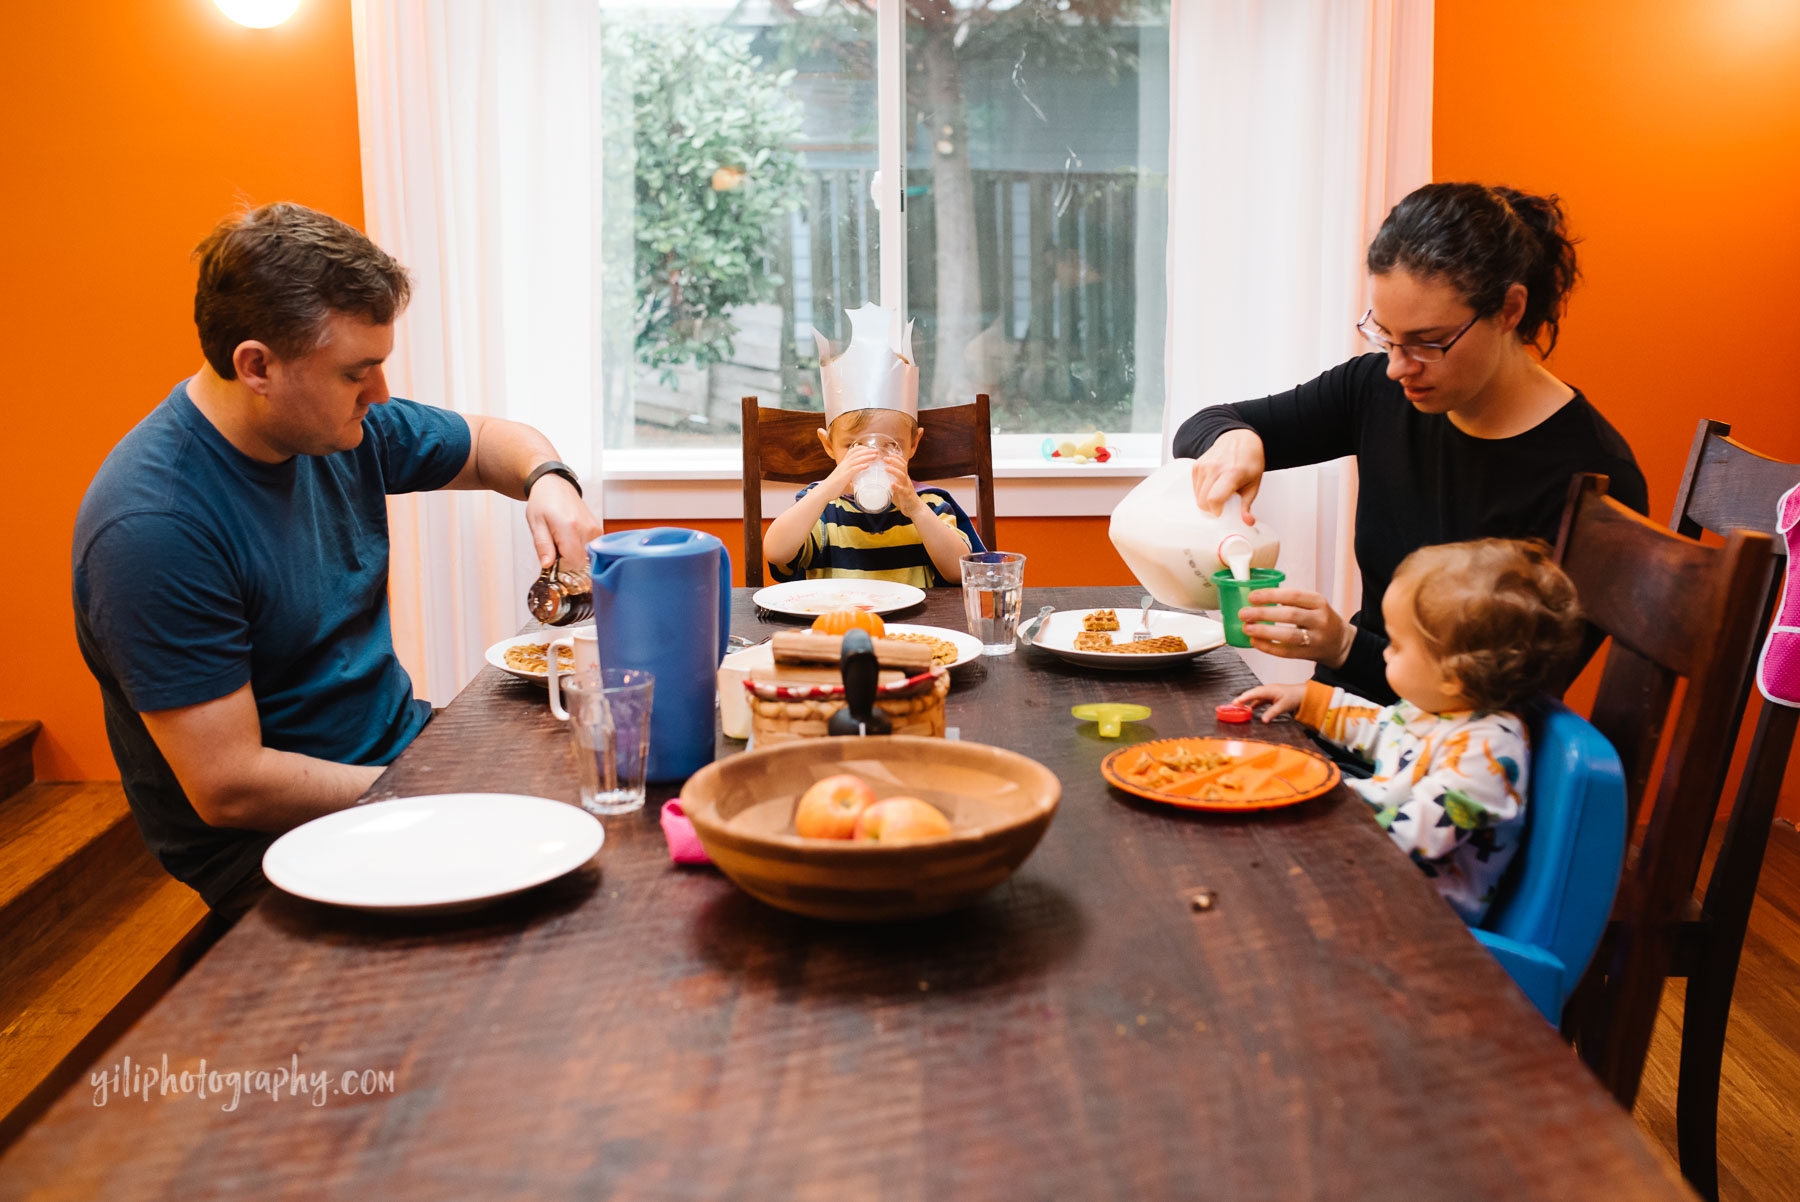 Family of four eating breakfast together at dining table